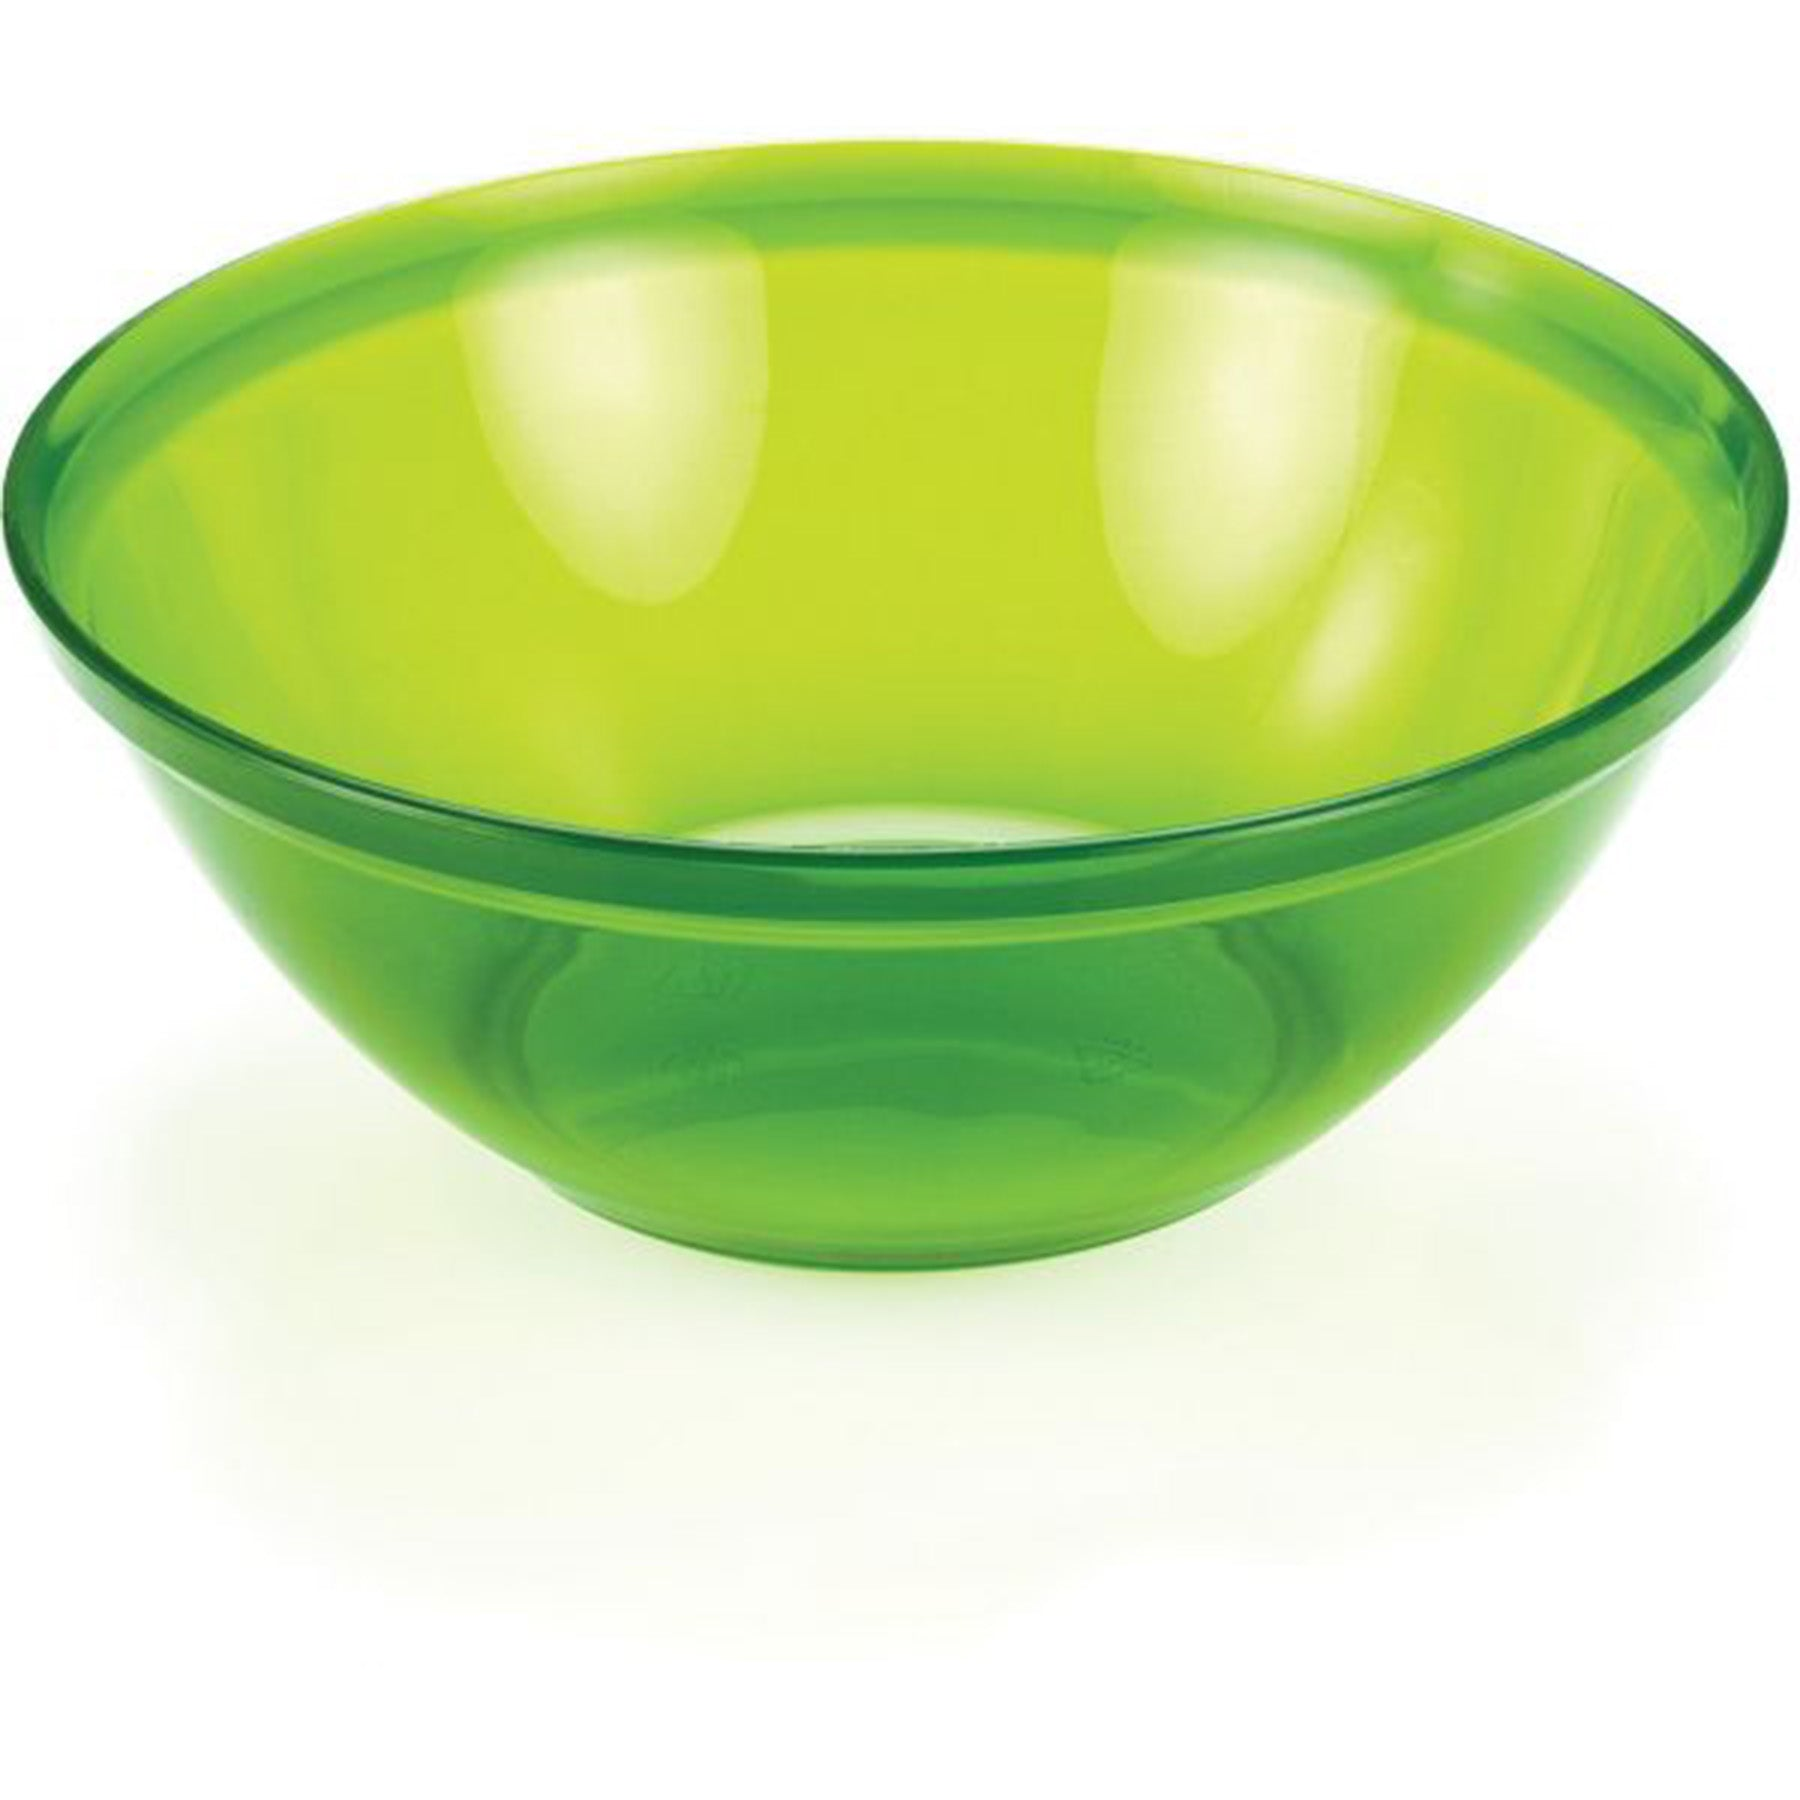 close up of the green lexan infinity bowl